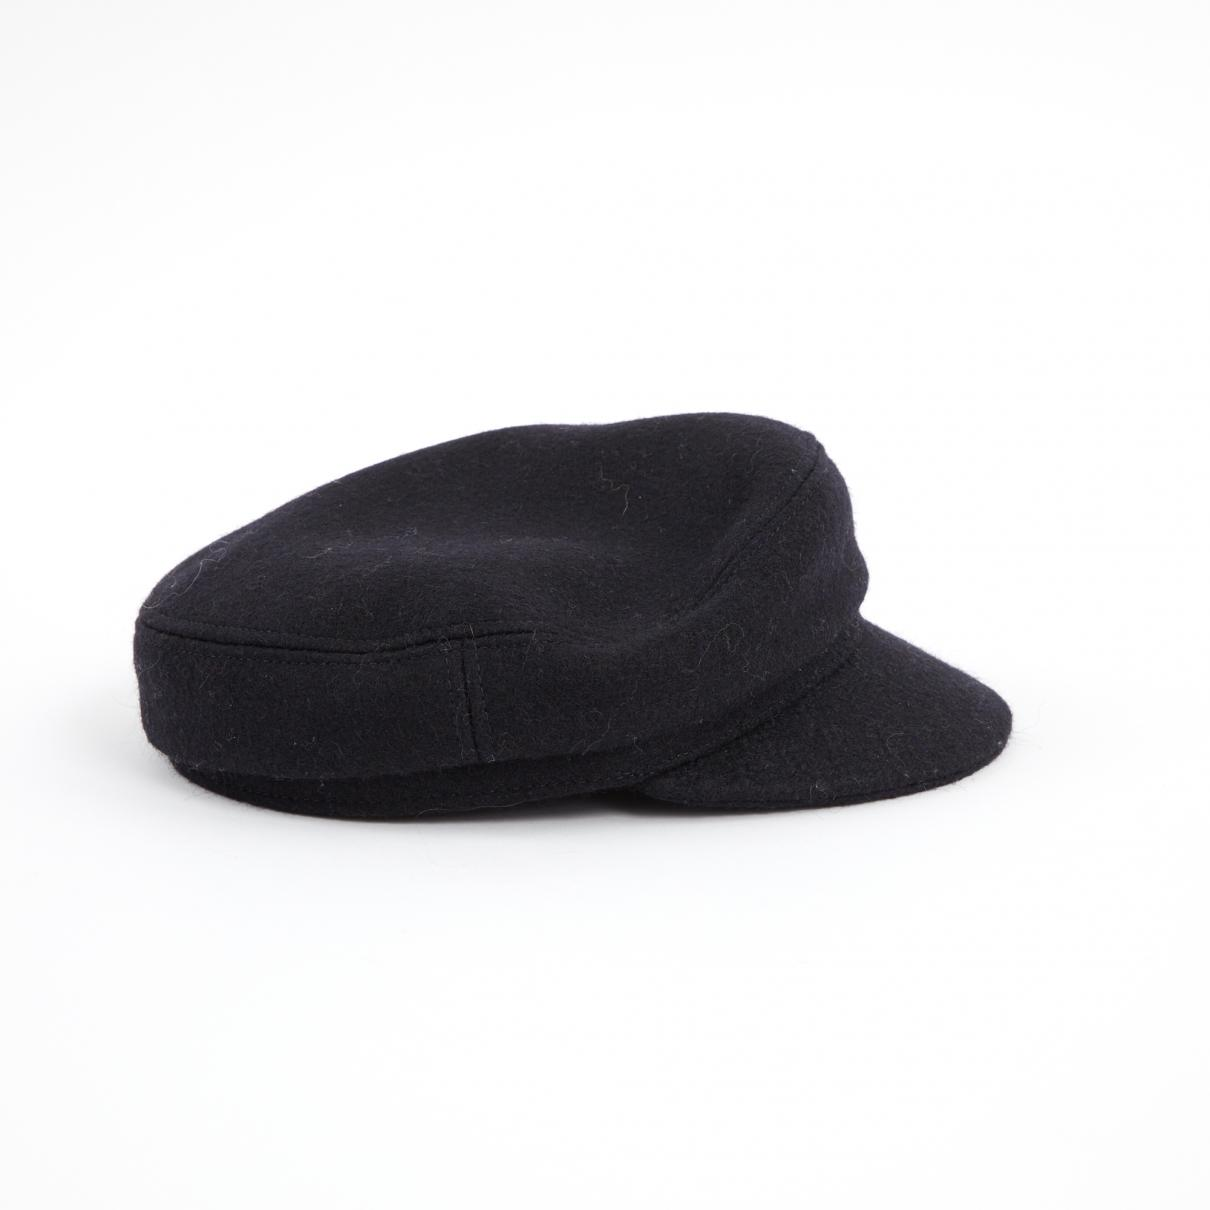 Isabel Marant - Pre-owned Black Wool Hats - Lyst. View fullscreen 4b800caee543